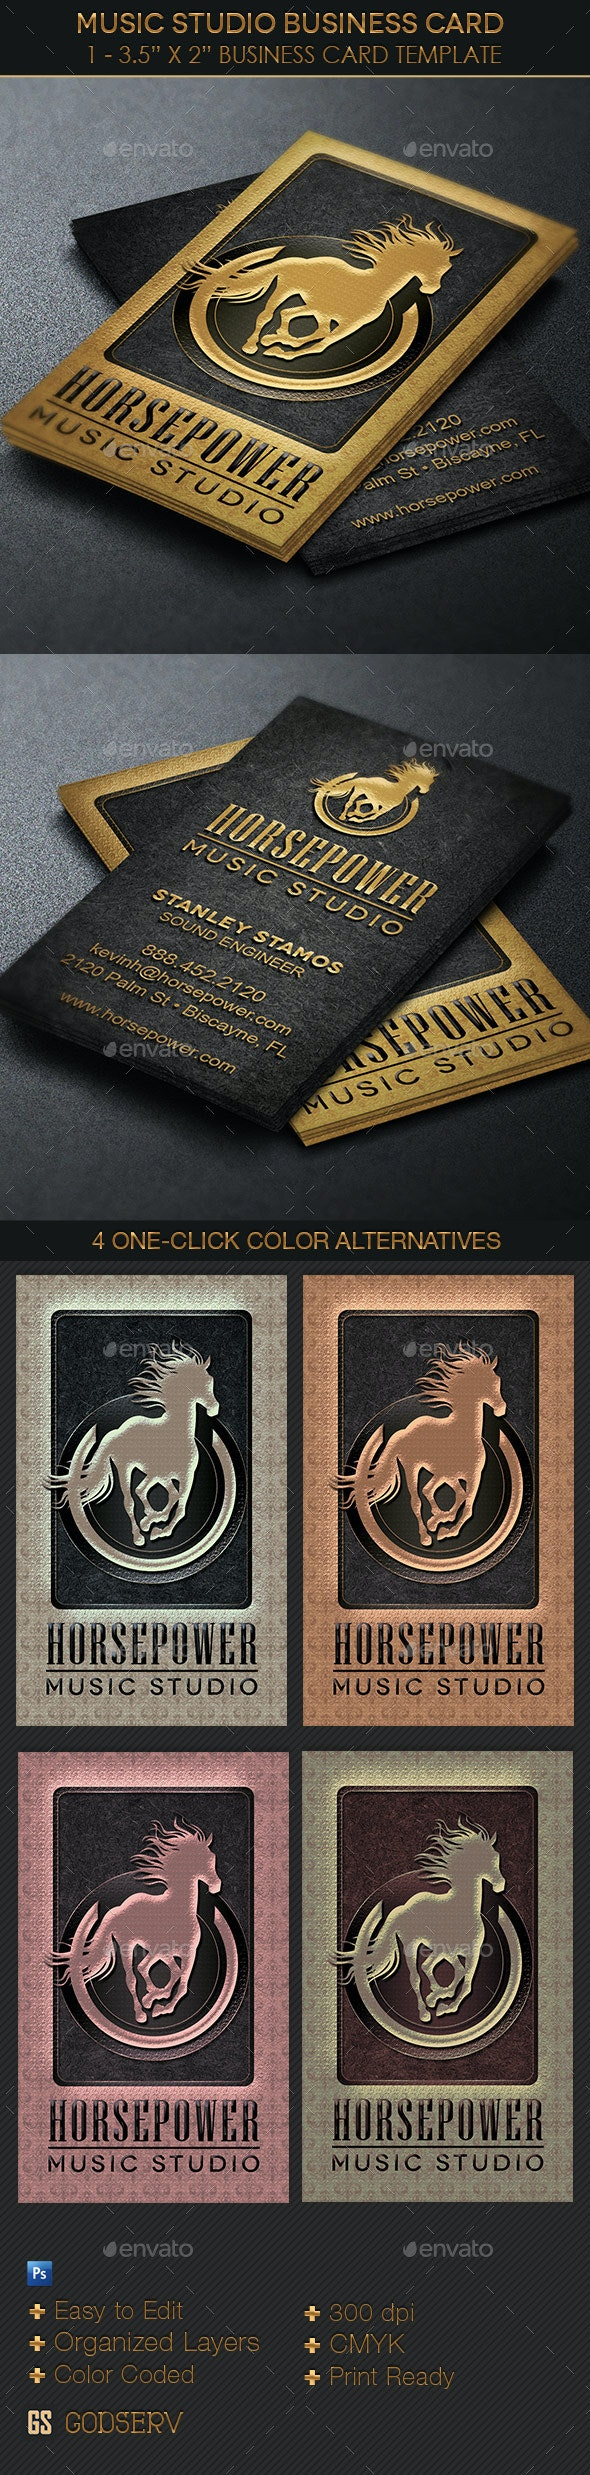 Music Studio Business Card Template - Industry Specific Business Cards